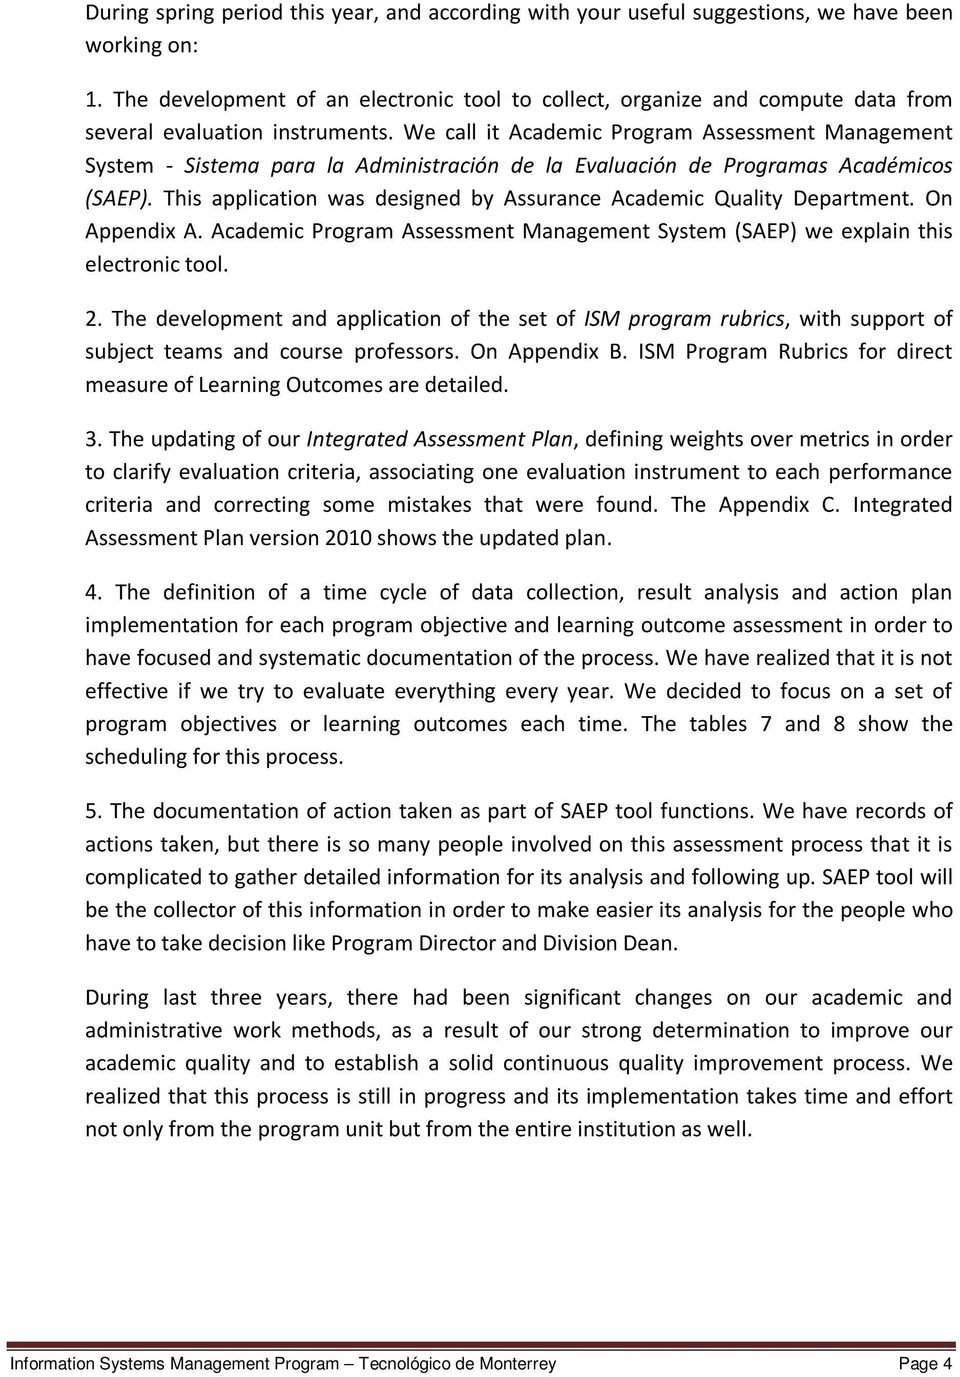 We call it Program Assessment Management System - Sistema para la Administración de la Evaluación de Programas Académicos (SAEP). This application was designed by Assurance Quality Department.